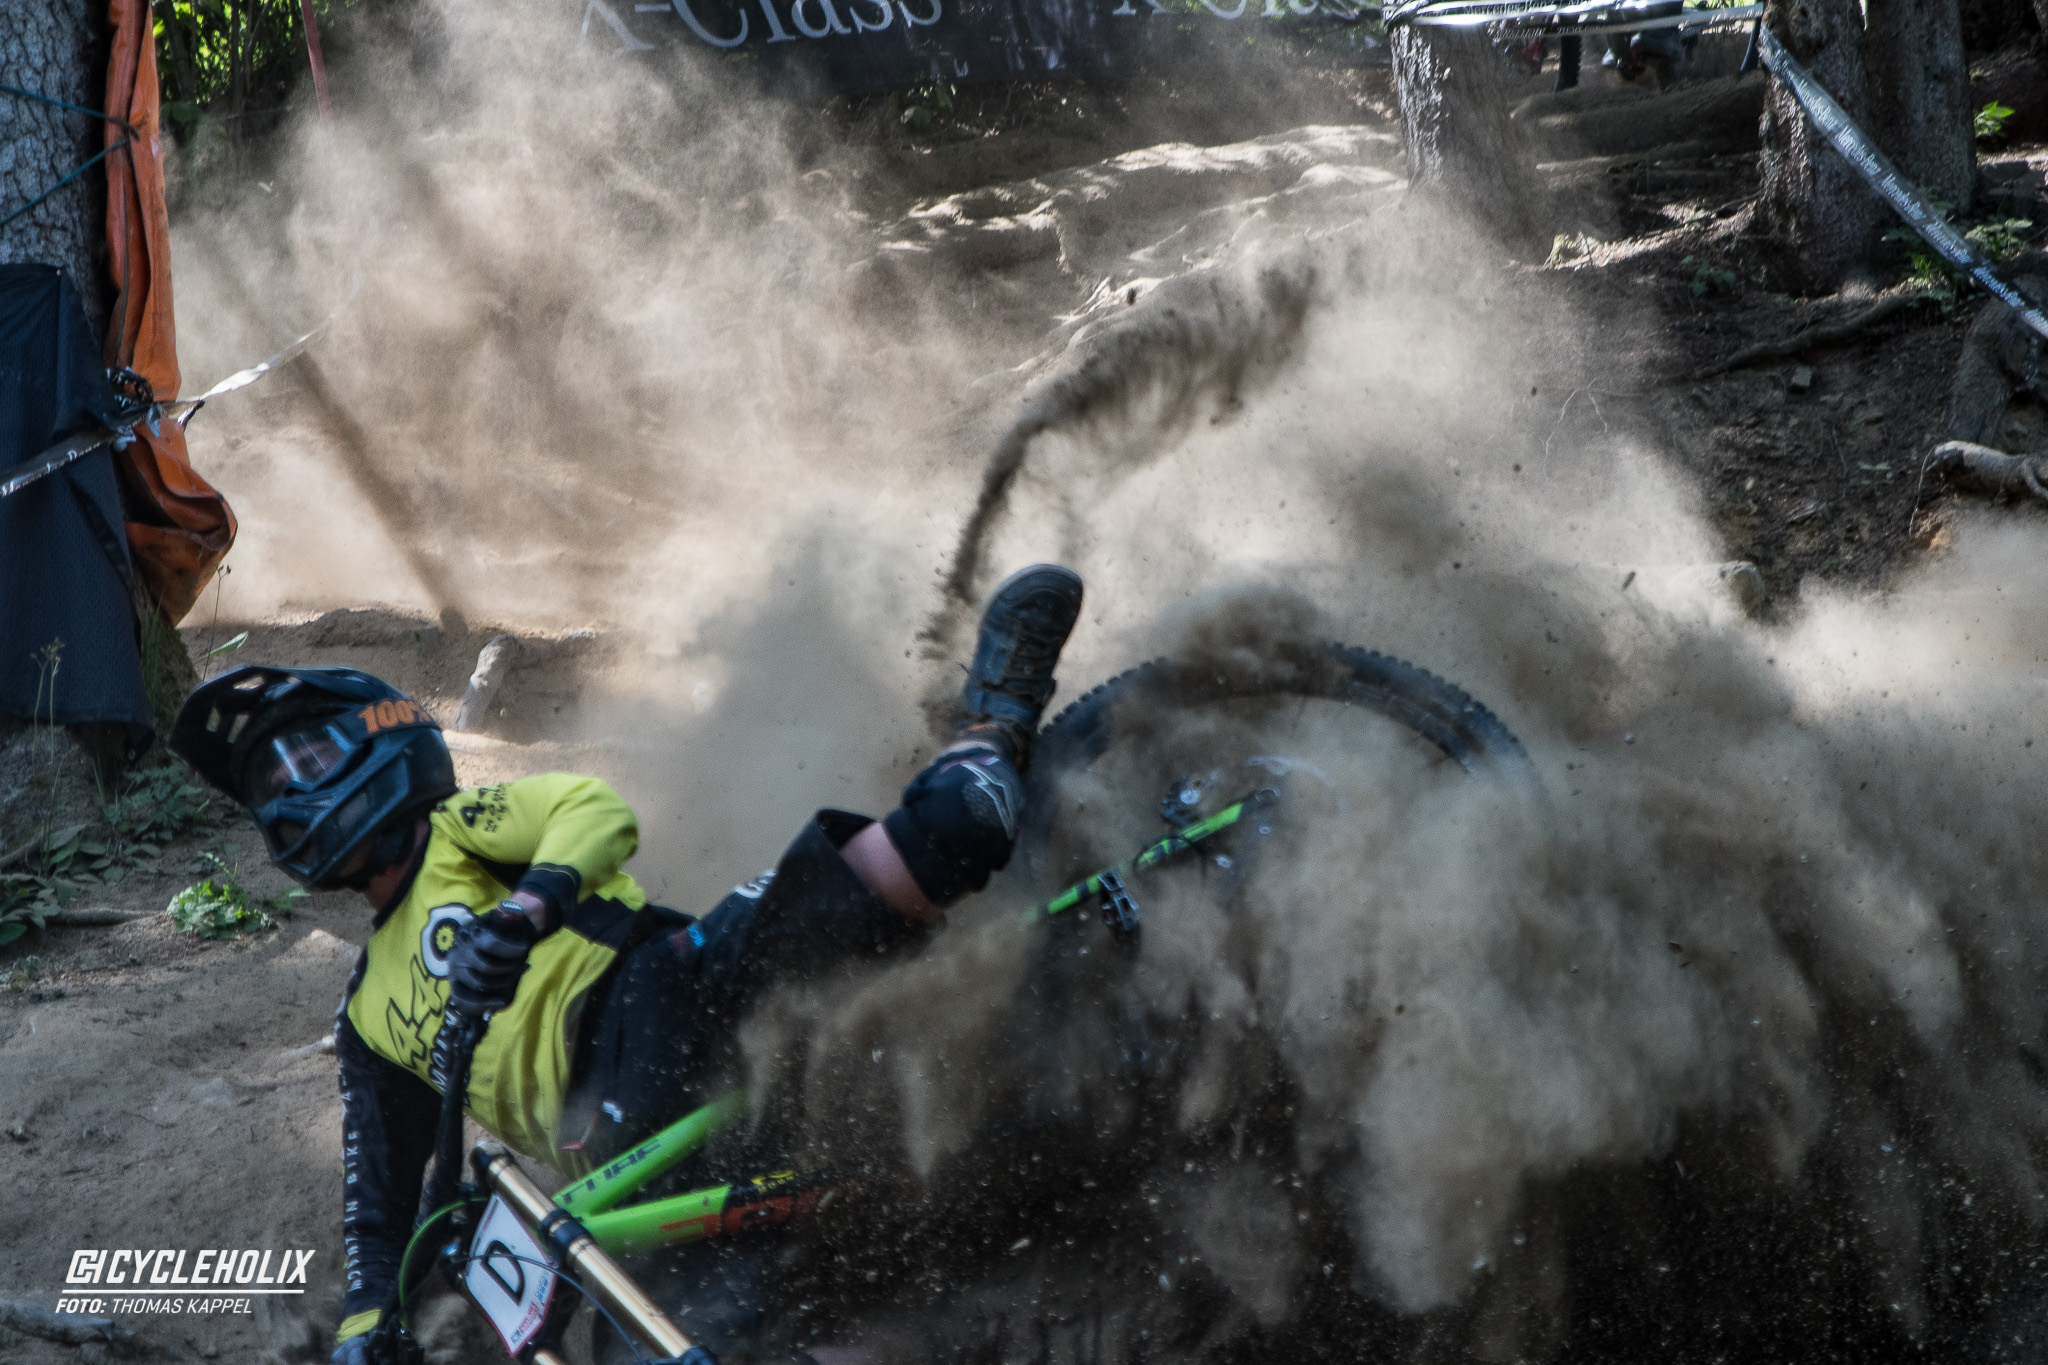 2019 Downhill Worldcup Leogang Finale Action 4